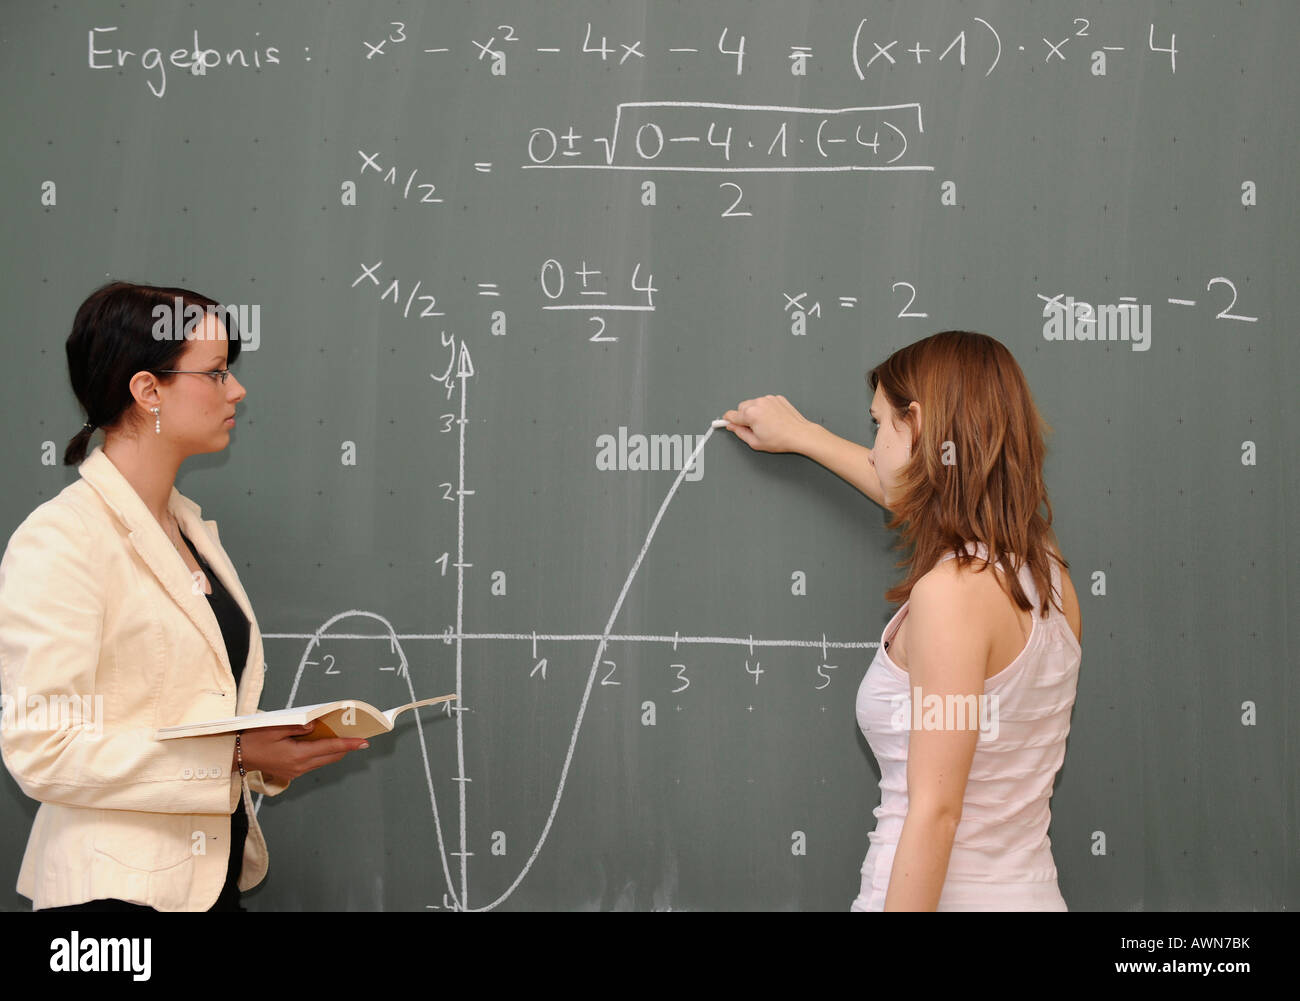 Teaching Maths Young Female Teacher Teaching Maths Stock Photo 16620150 Alamy